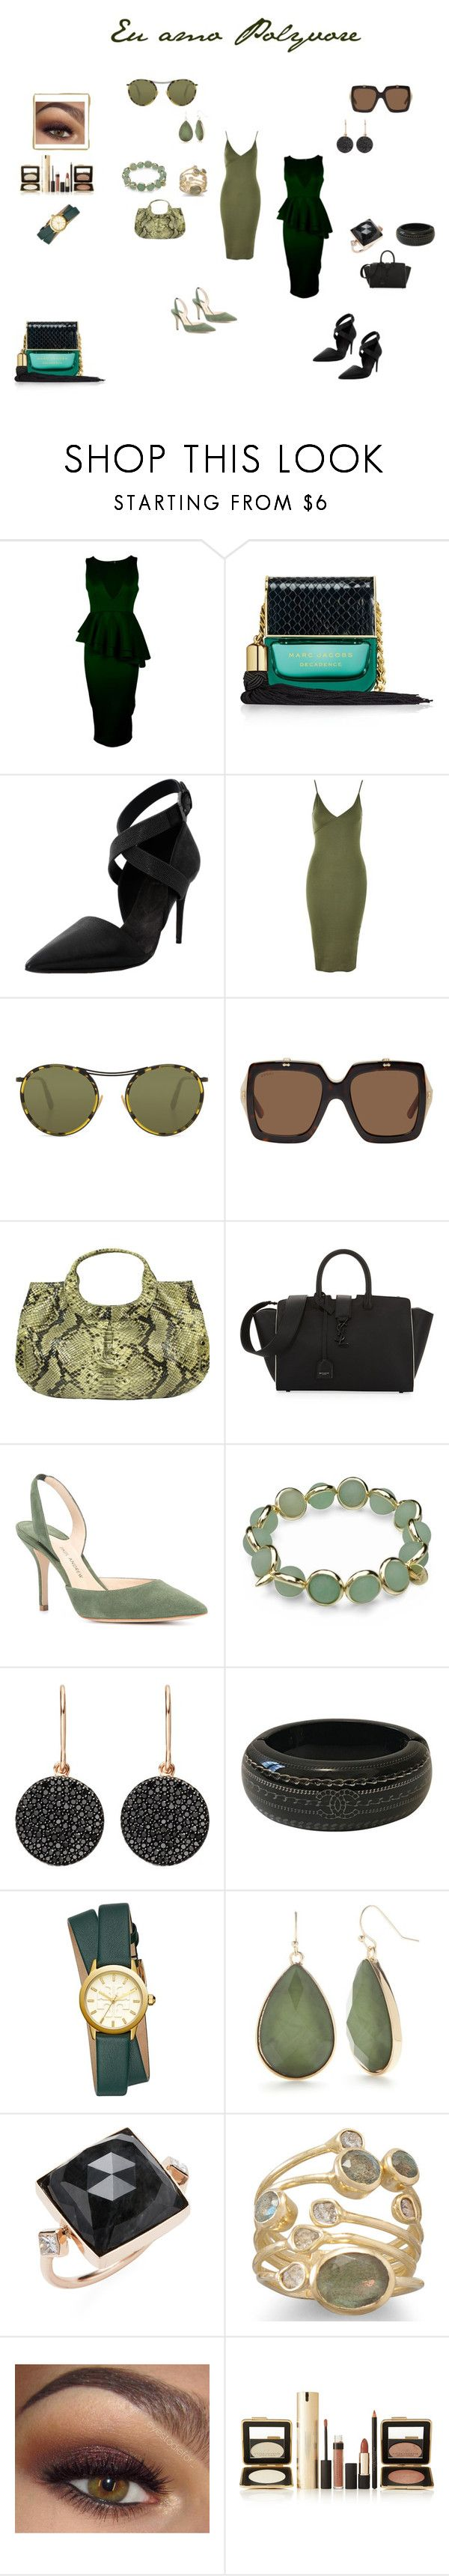 """""""Trabalho e jantarzinho!"""" by madamadah on Polyvore featuring moda, Boohoo, Marc Jacobs, Brunello Cucinelli, Topshop, Oliver Peoples, Gucci, Yves Saint Laurent, Paul Andrew e Maggy London"""